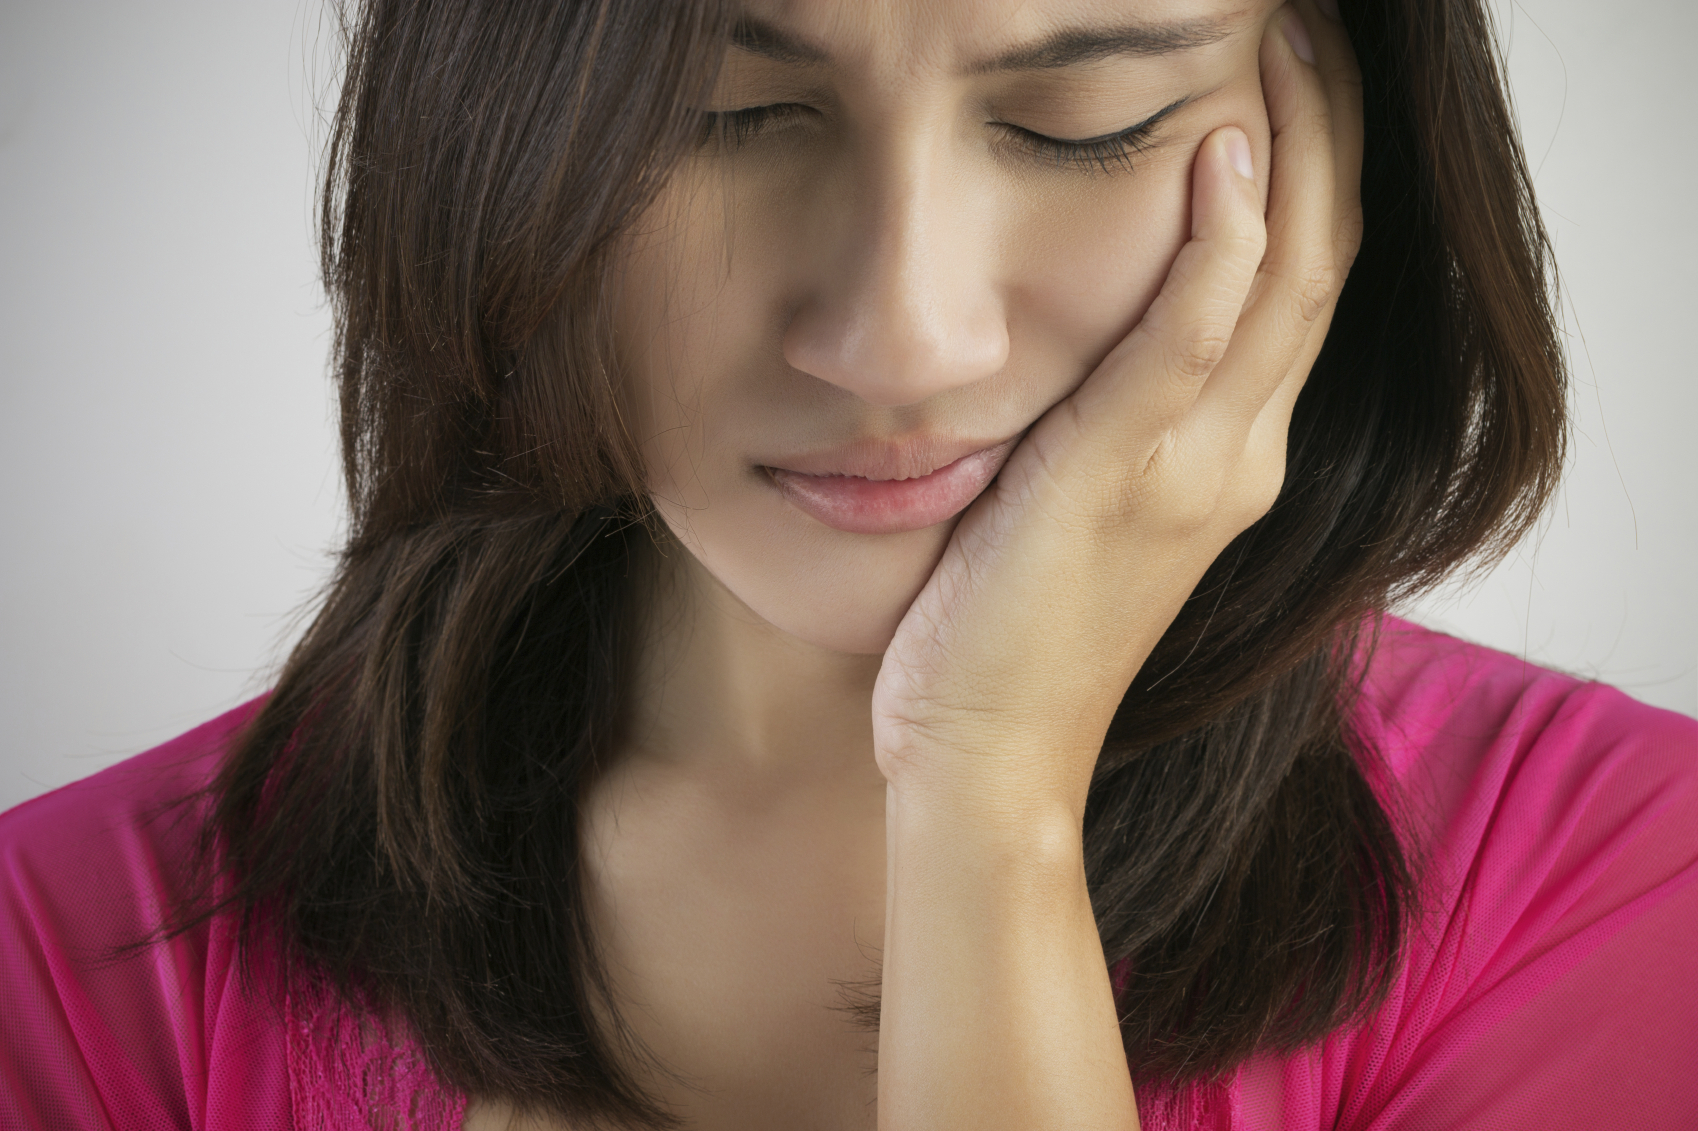 Woman feels a toothache